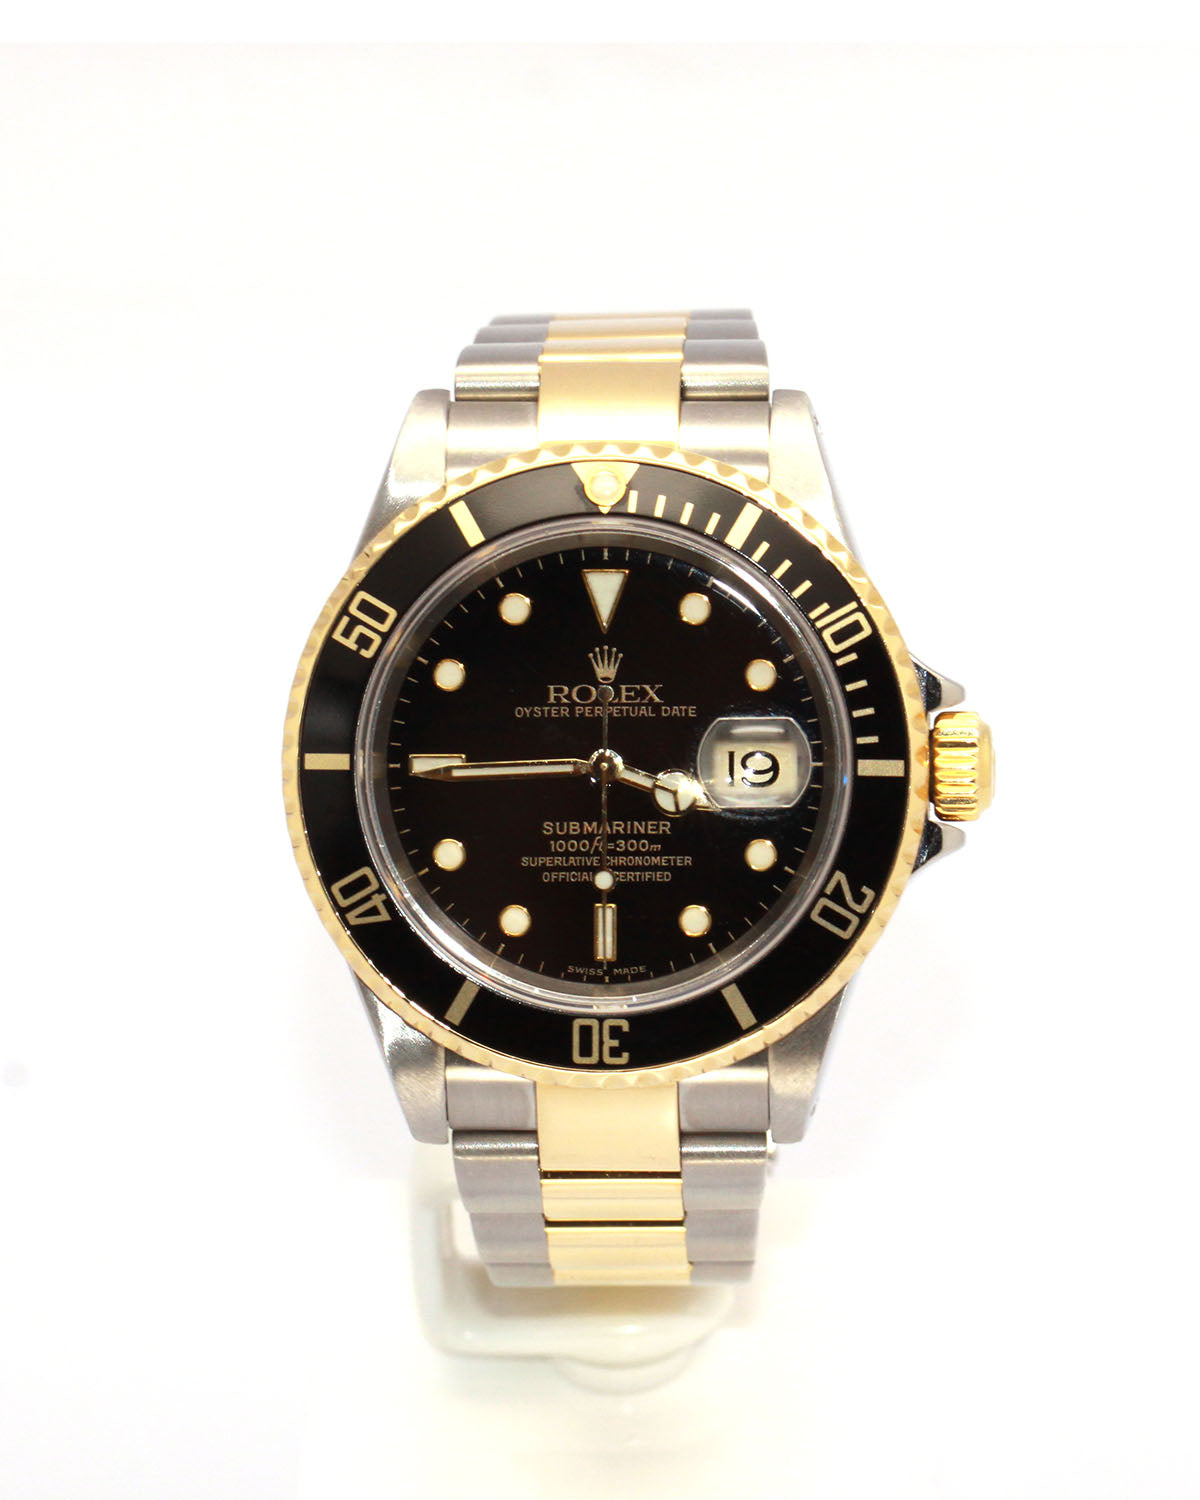 ROLEX BLACK SUBMARINER DATE 16613 TWO,TONE, GOLD CLASP